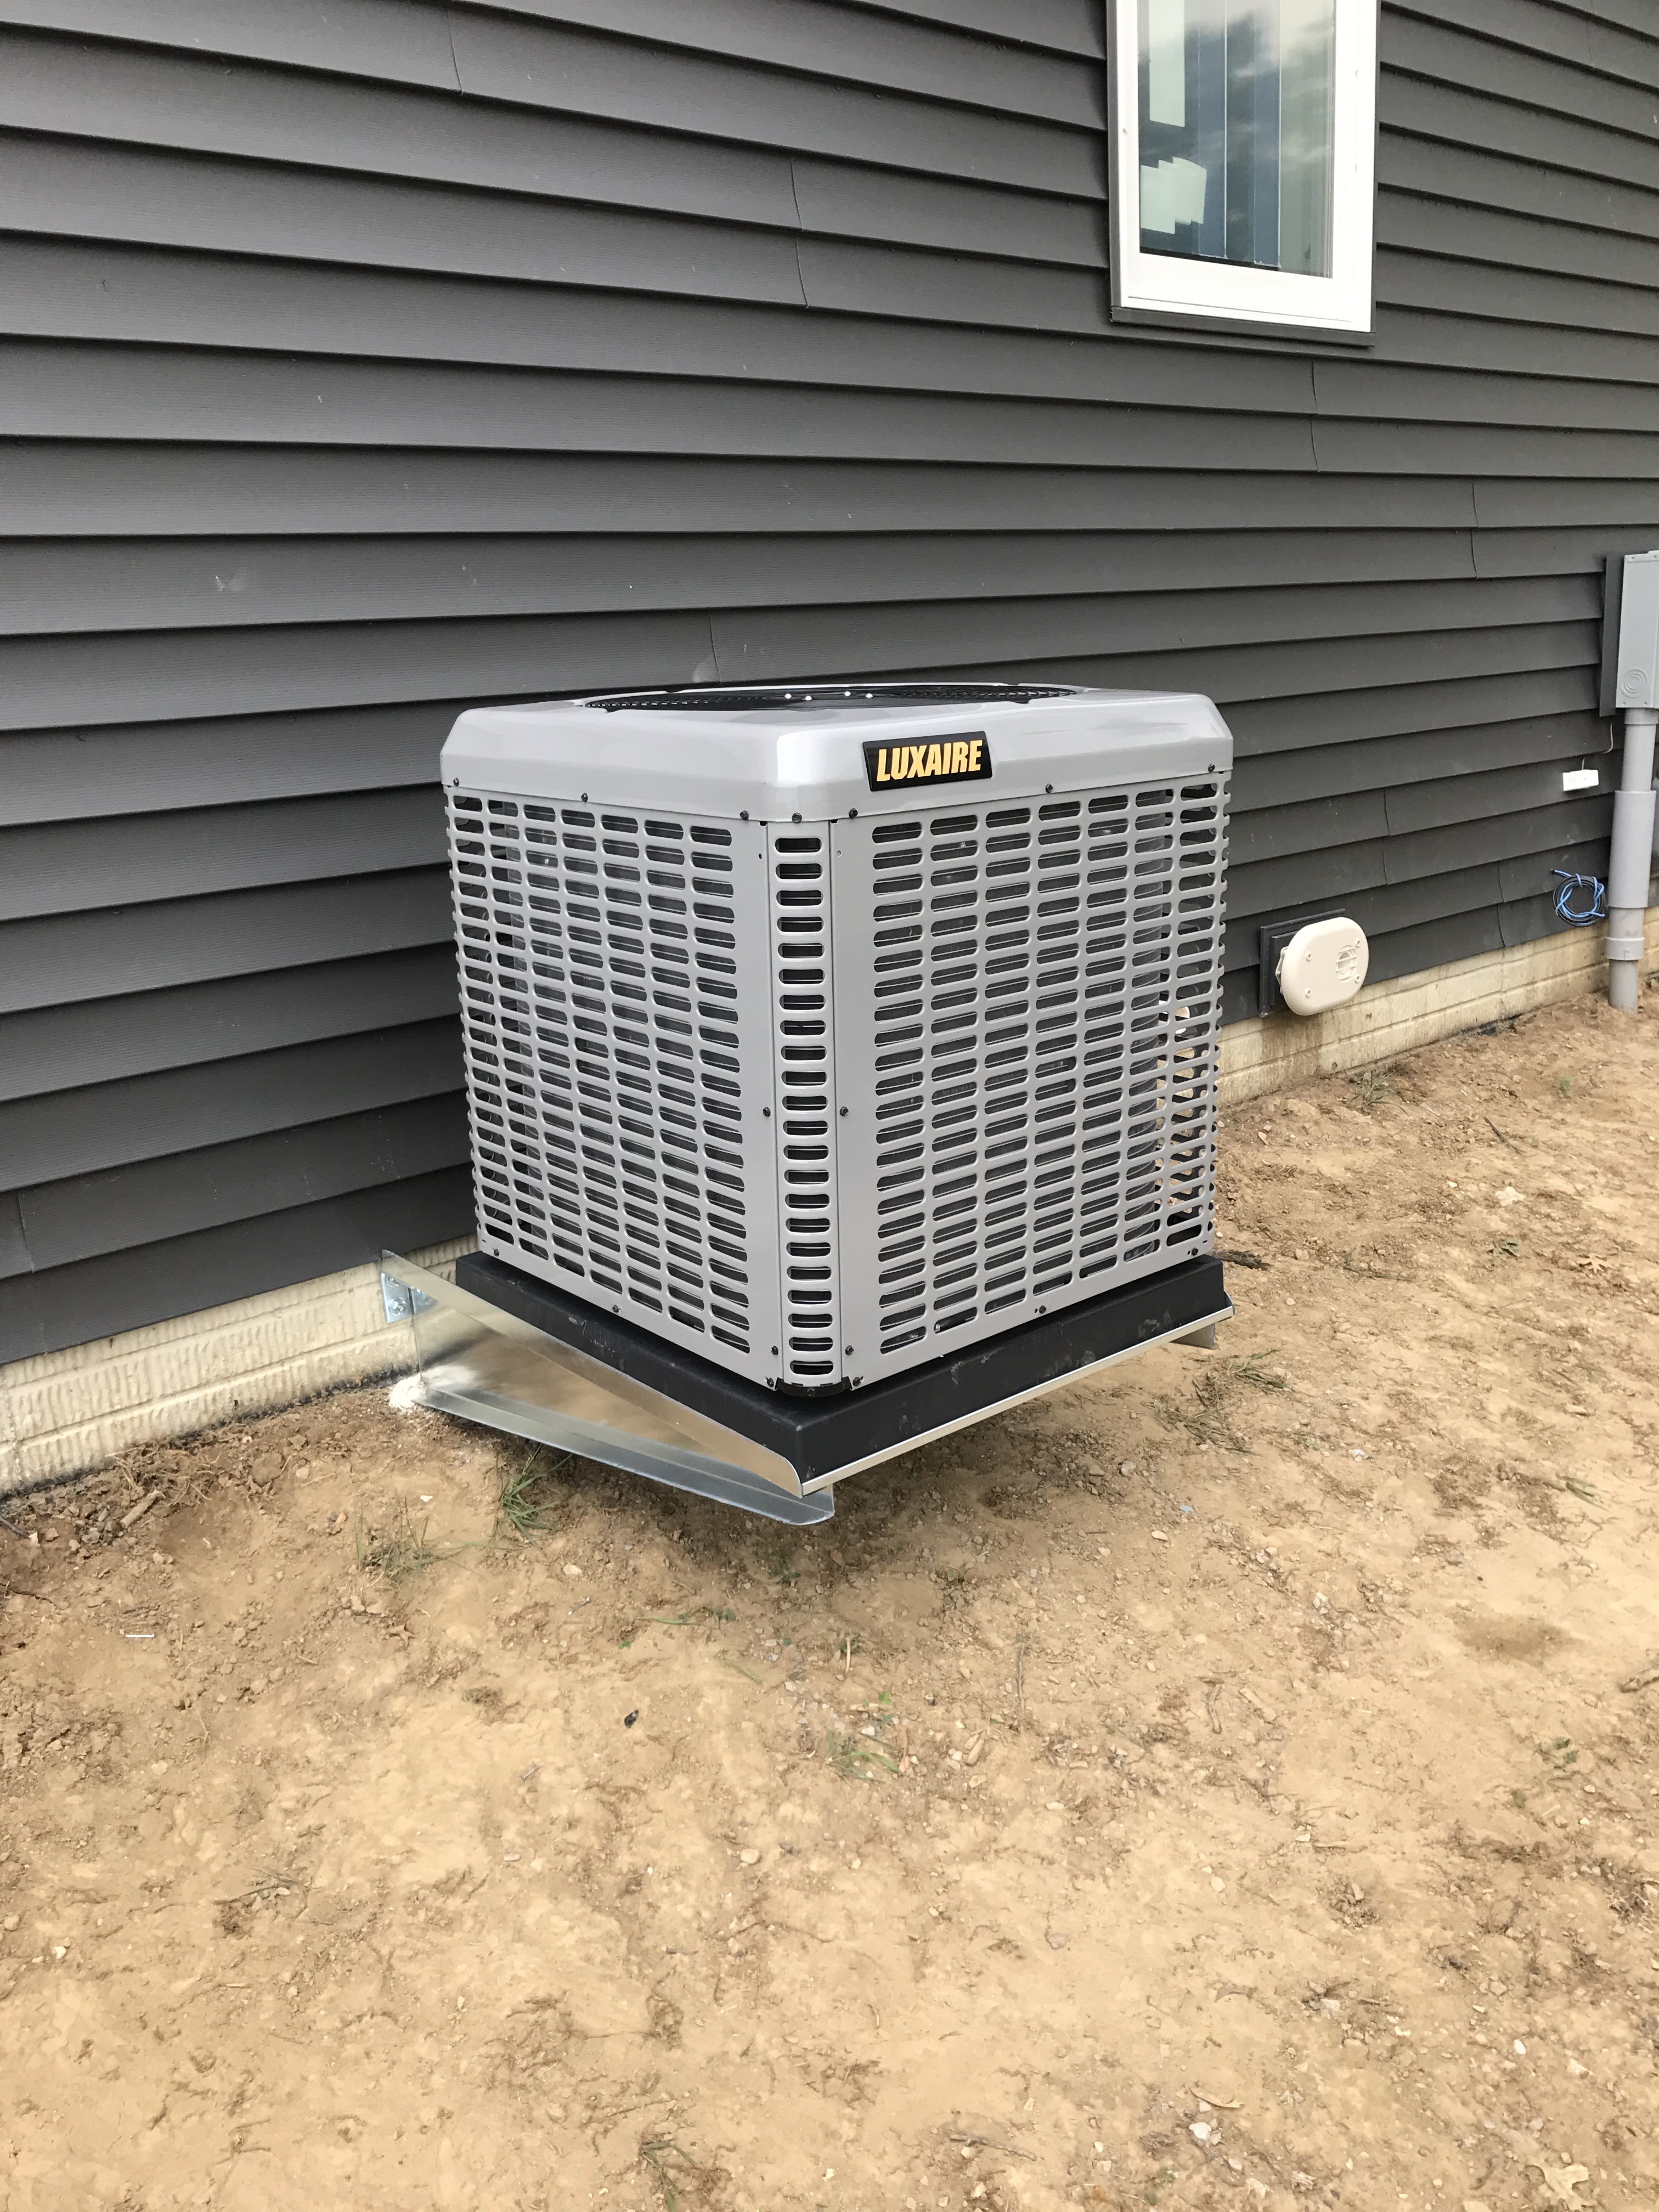 Quick Tips to Keep Your Air Conditioner Clean